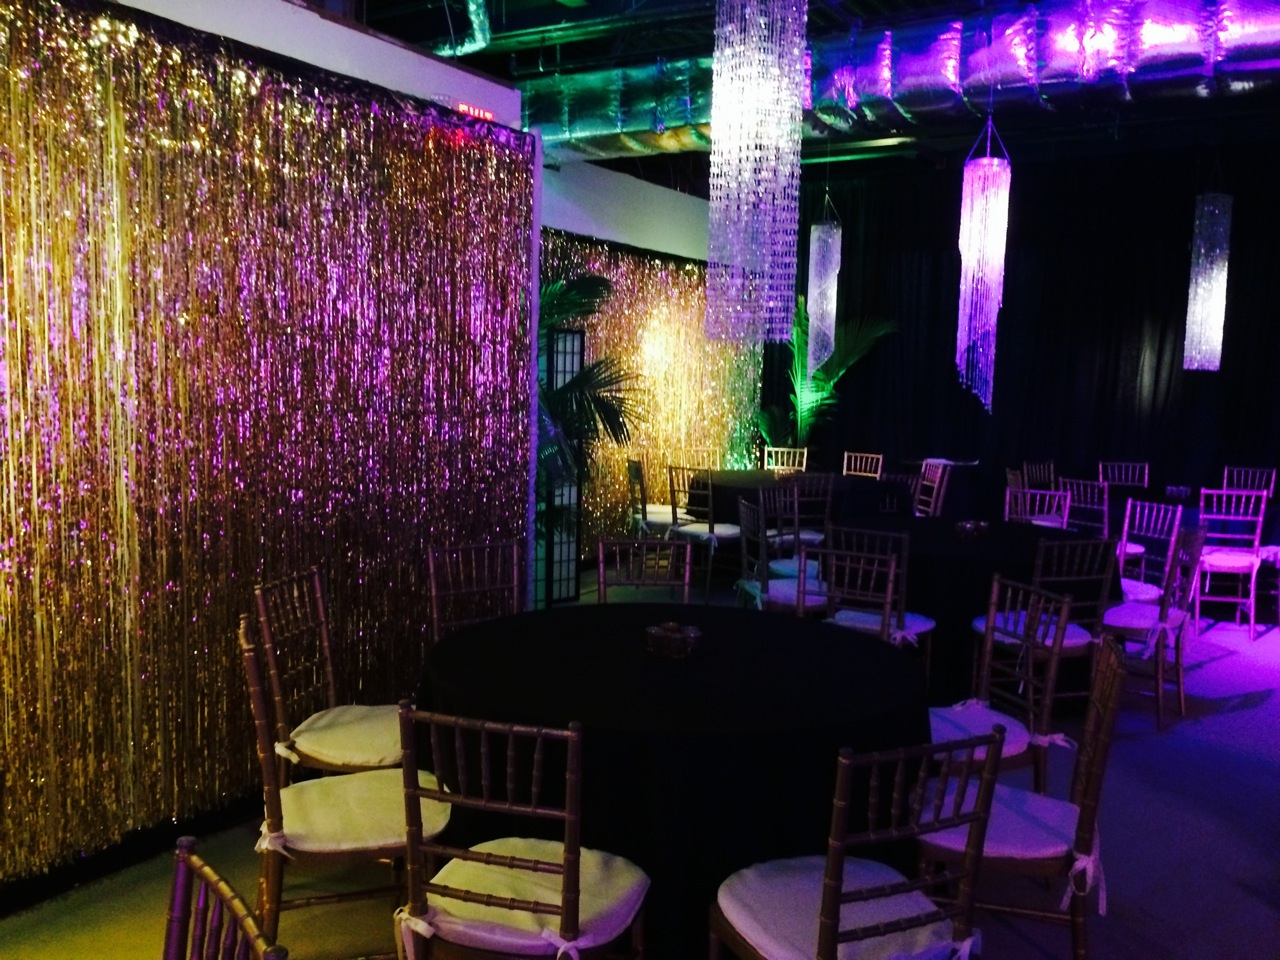 Great Gatsby Theme - Eggsotic Events NJ NYC Event Decor Design Lighting Room Transformation Art Deco Speakeasy The Great Gatsby Decorations and Lighting 6.jpg